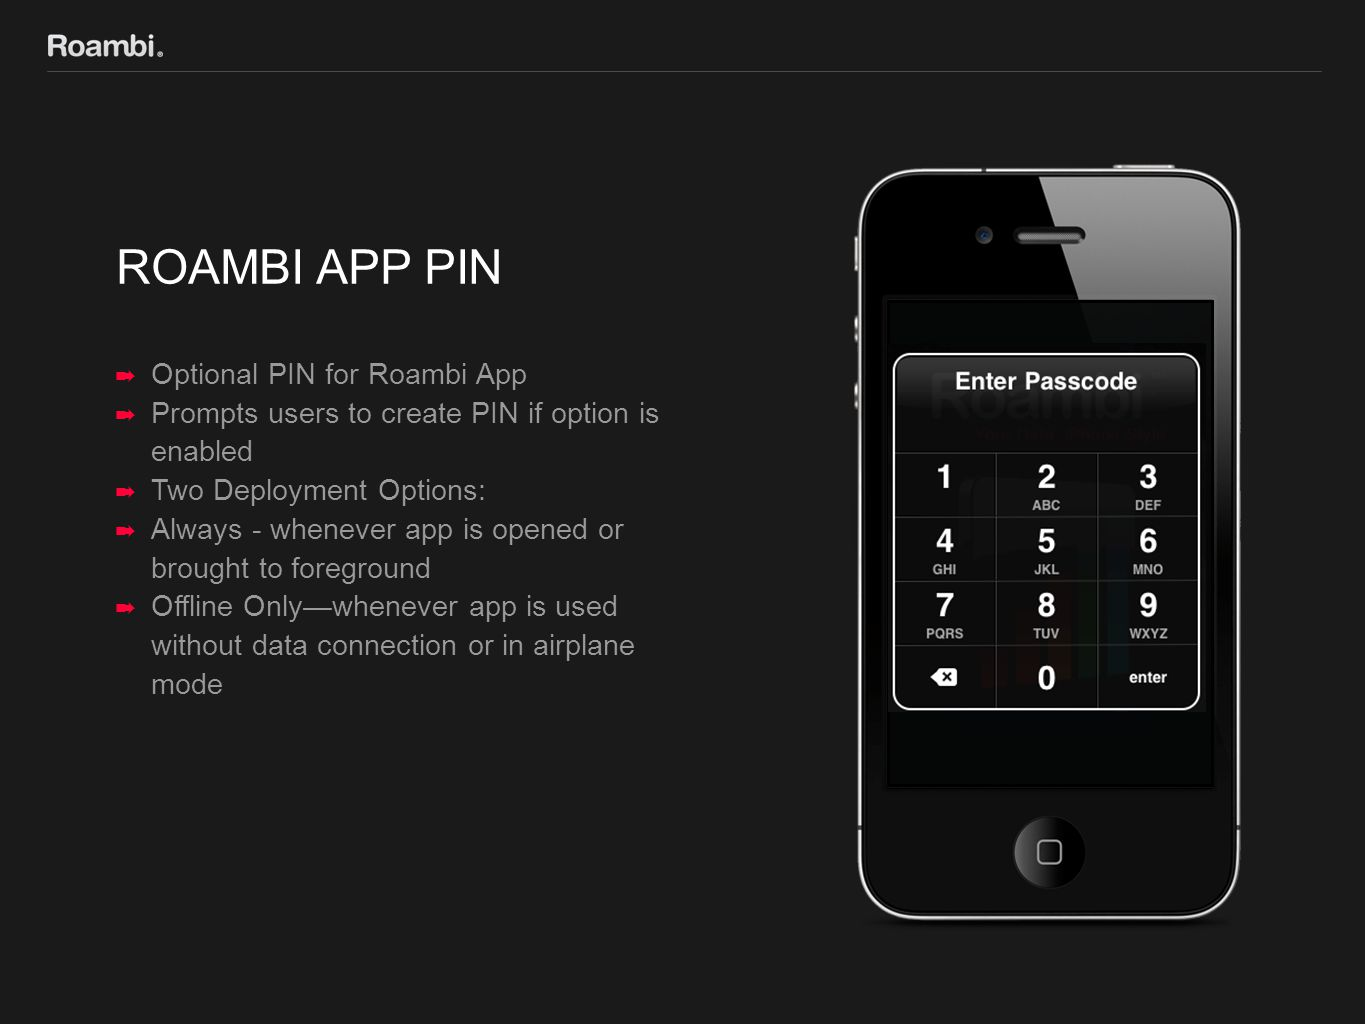 ROAMBI APP PIN ➡ Optional PIN for Roambi App ➡ Prompts users to create PIN if option is enabled ➡ Two Deployment Options: ➡ Always - whenever app is opened or brought to foreground ➡ Offline Only—whenever app is used without data connection or in airplane mode